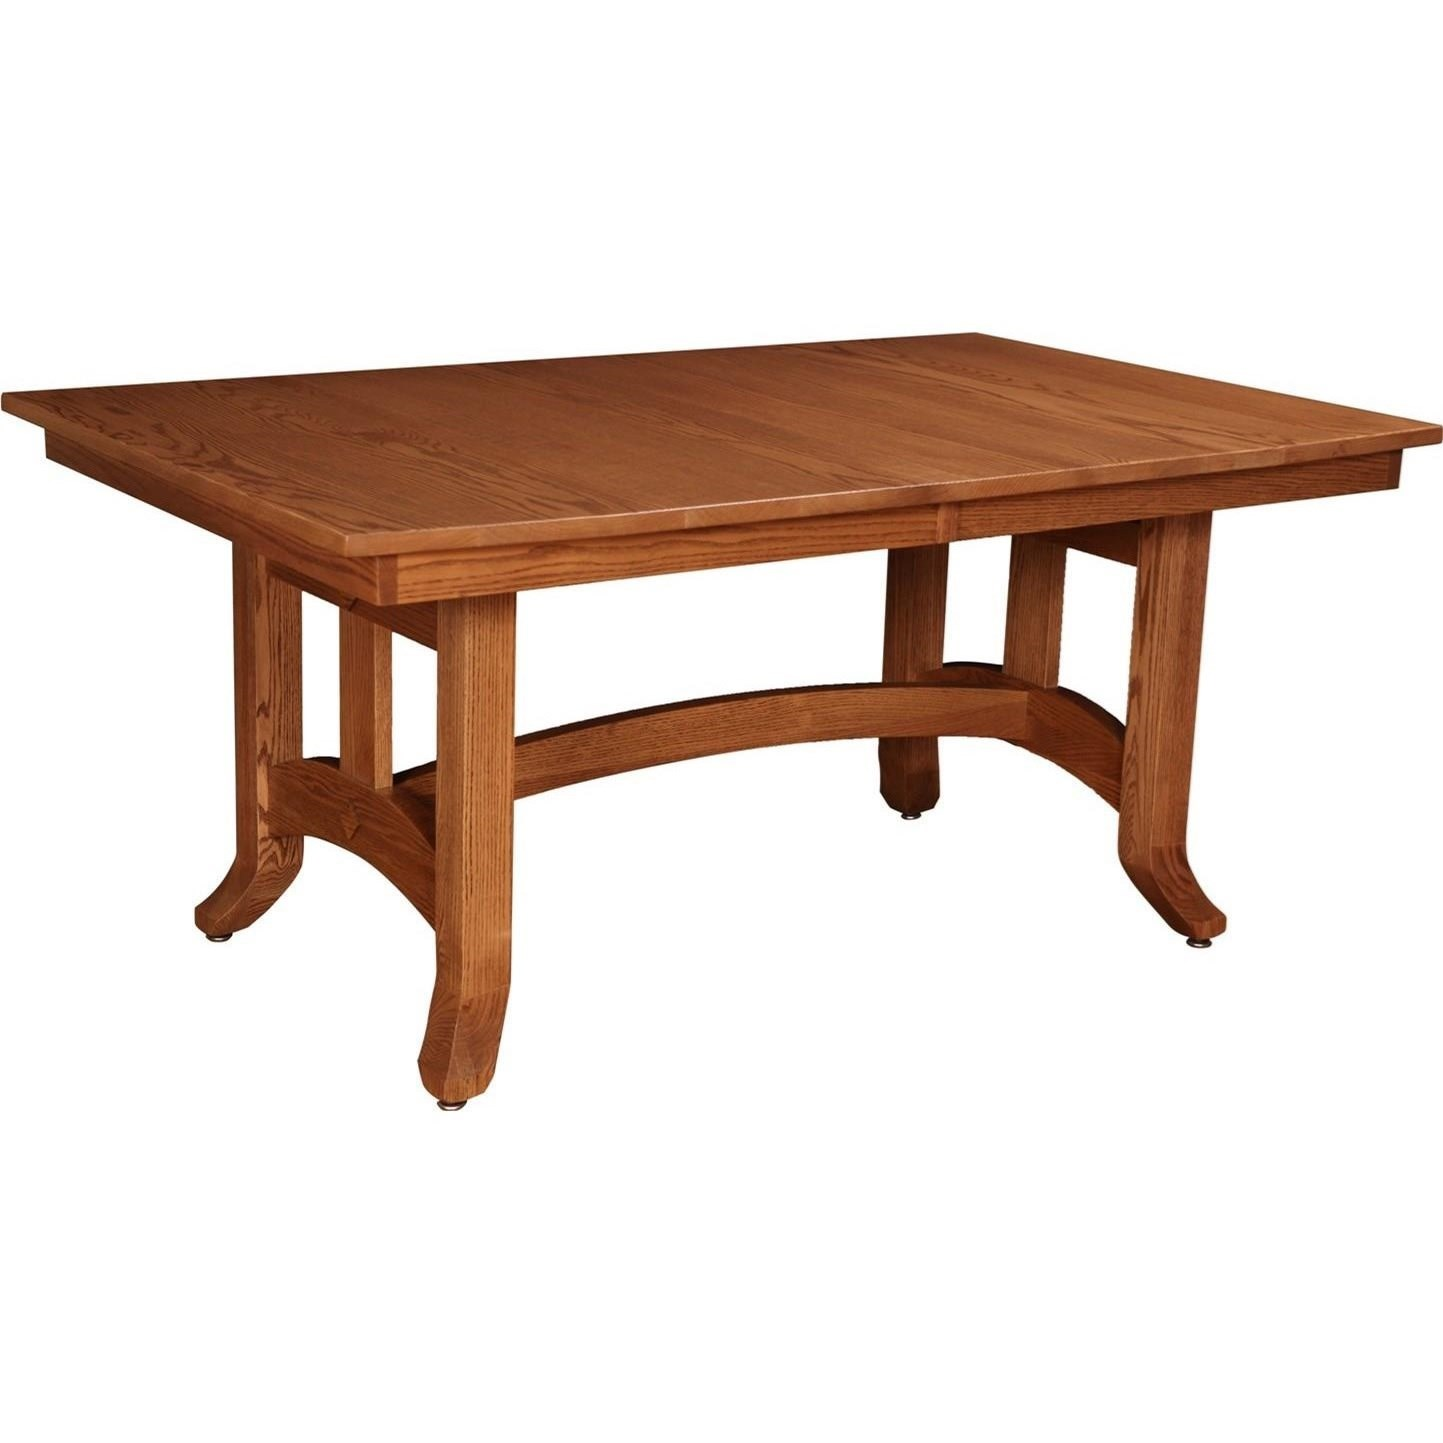 Rotmans Amish Biltmore Dining Table with Apron and Two Leaves